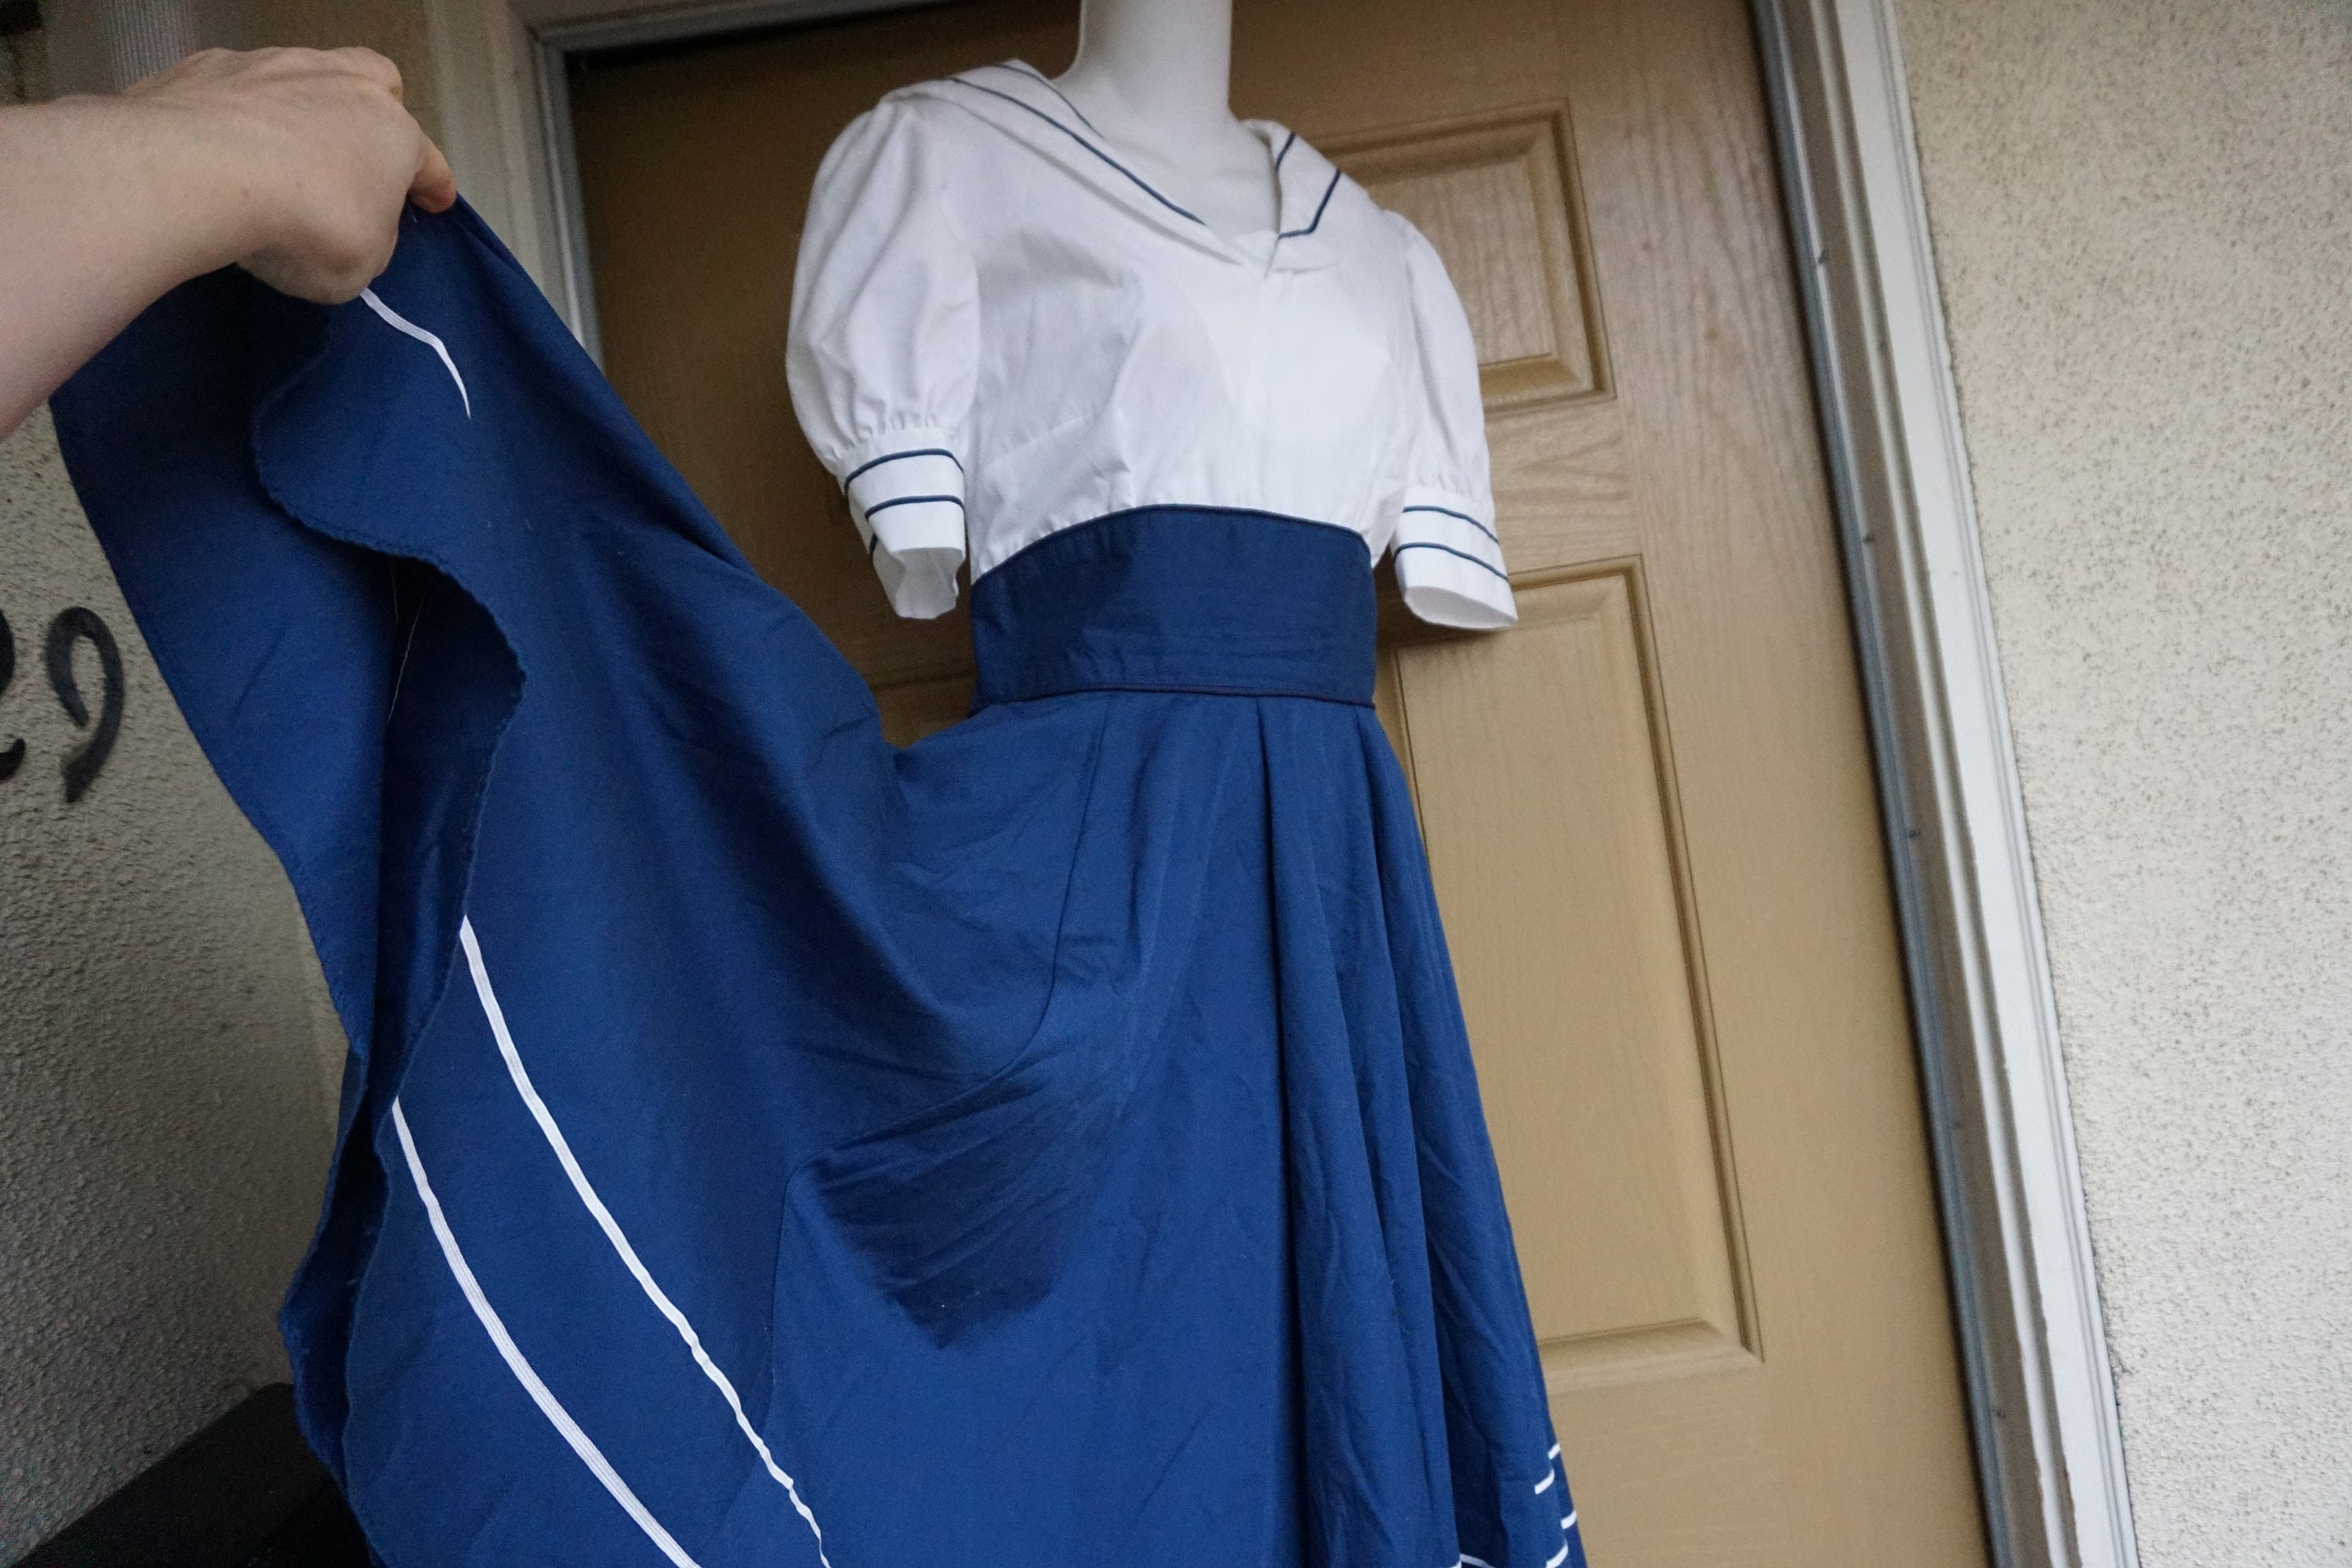 80s Dresses | Casual to Party Dresses Nautical Vintage 1980S Dress Medium Sailor Nayy Blue  White With Gold Embroidered Stars $0.00 AT vintagedancer.com